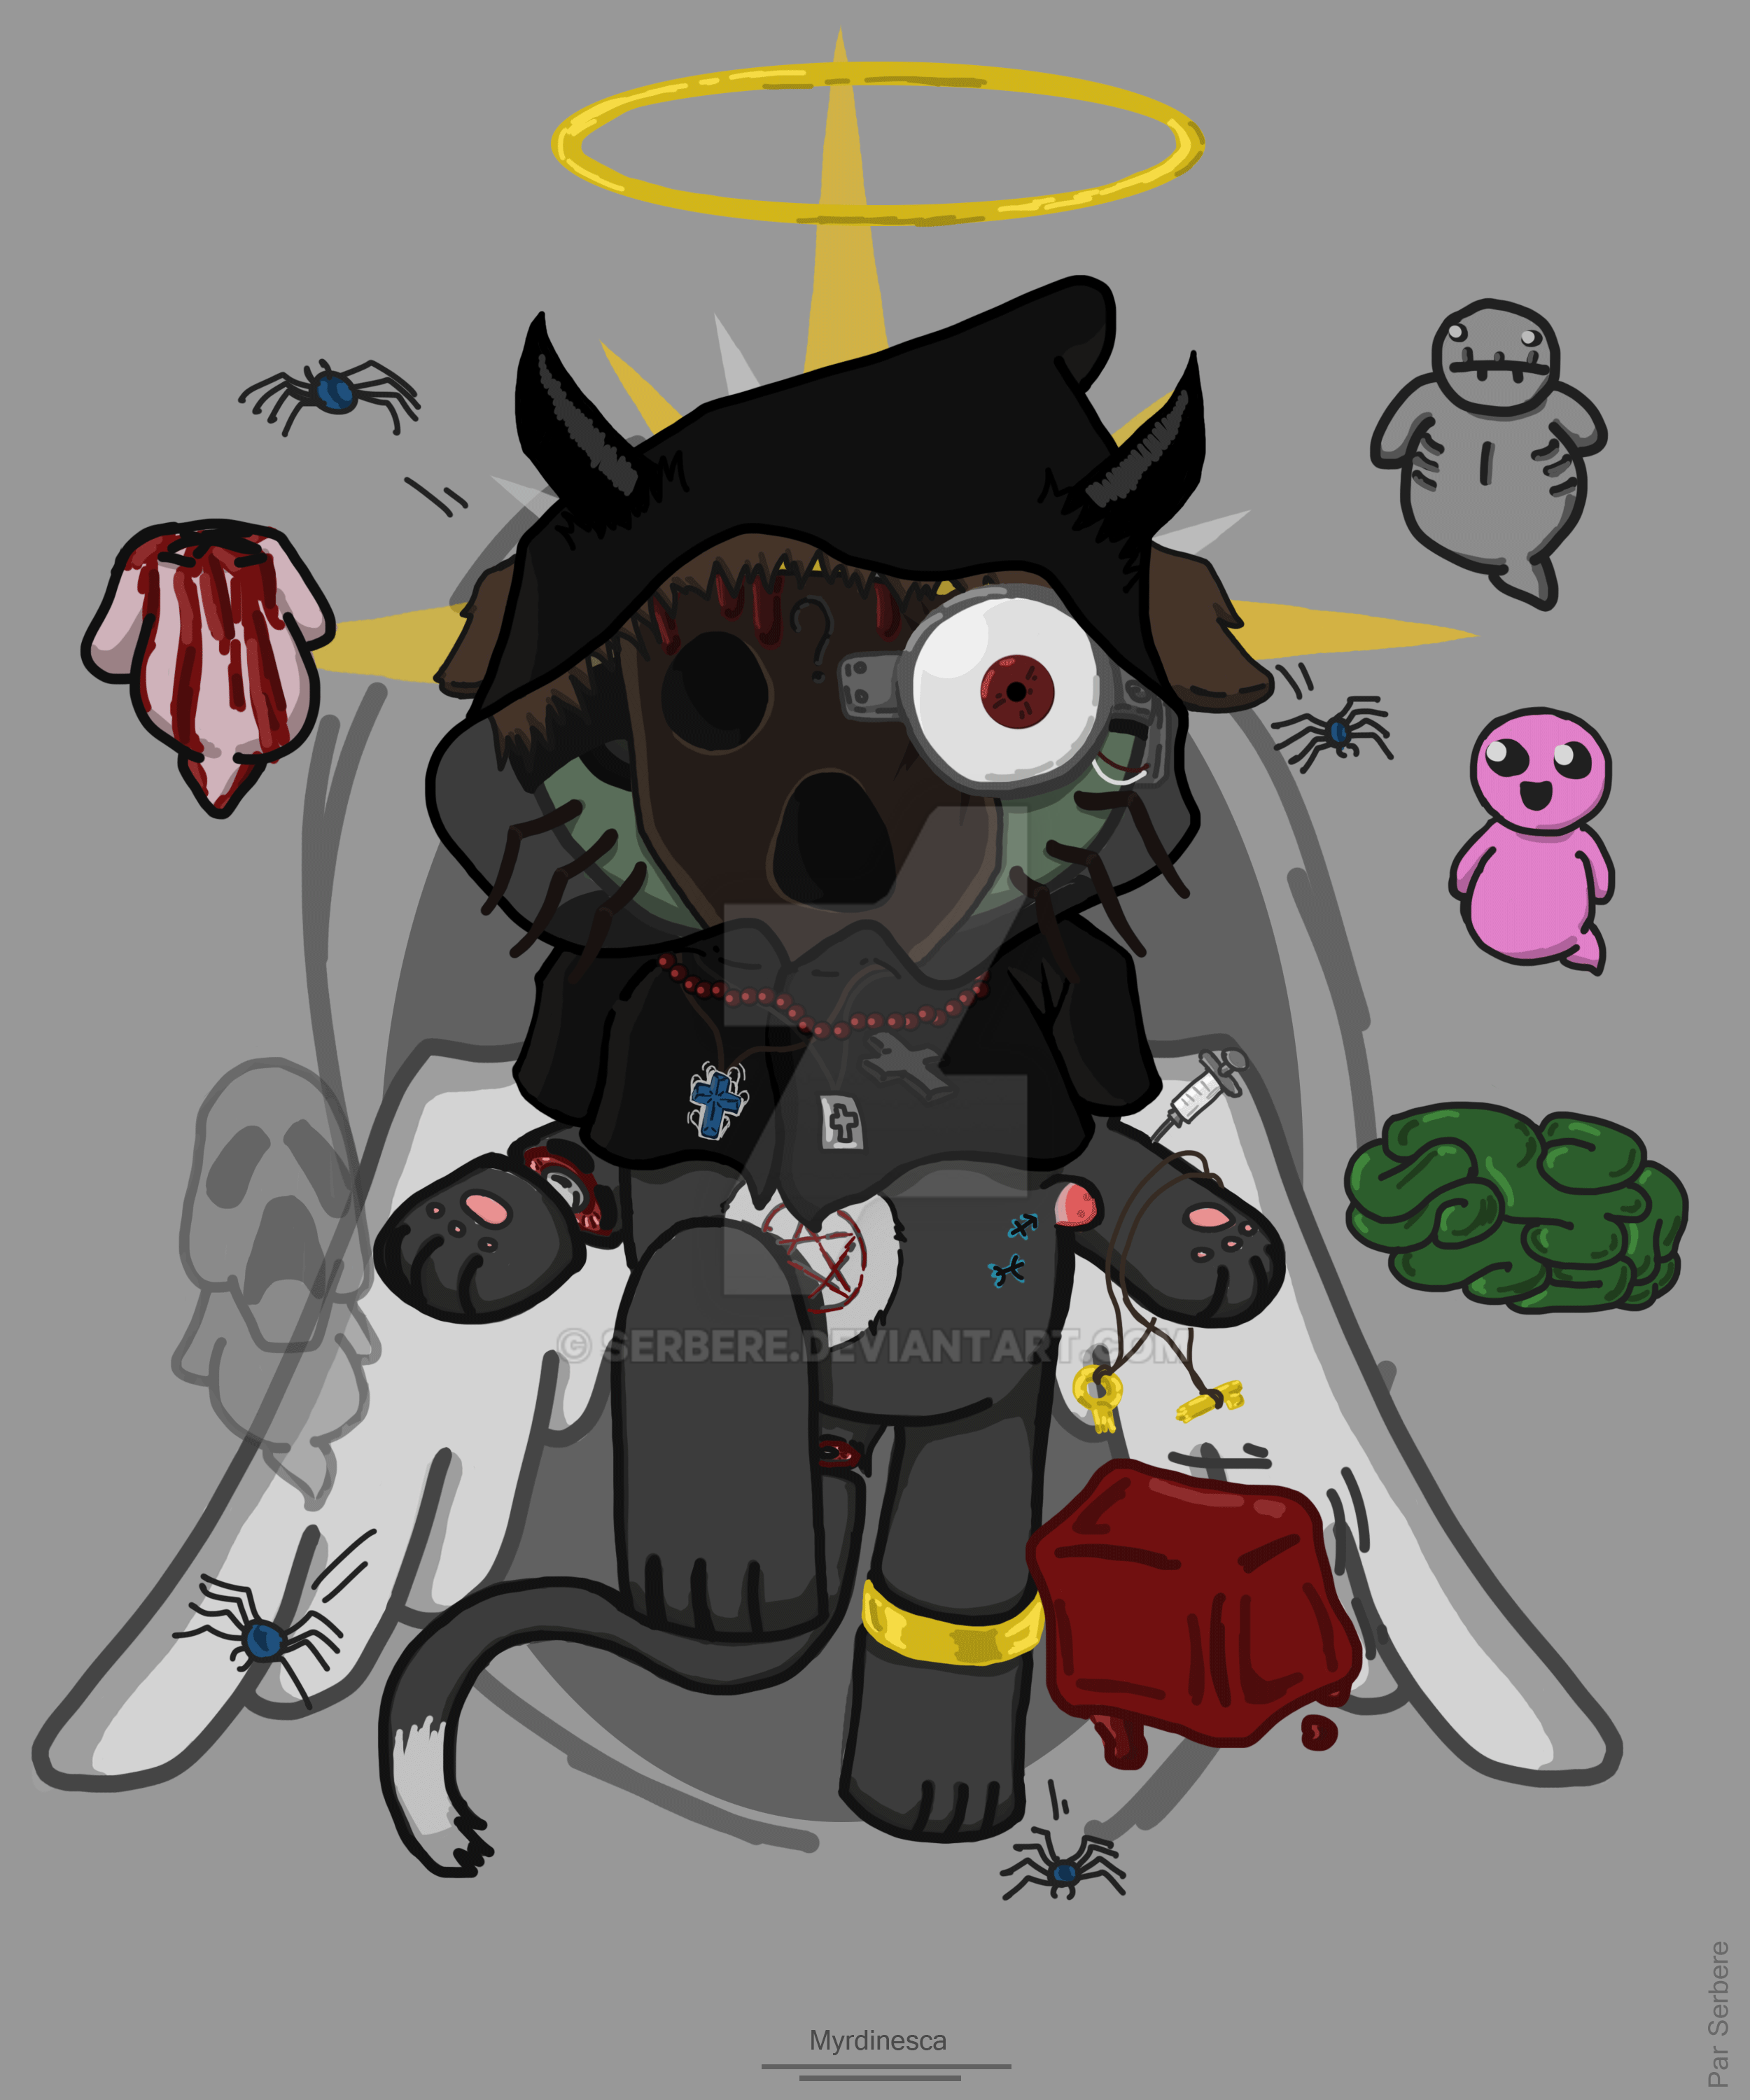 Fan-art -Myrdinesca-The-Binding-of-Isaac-#2 By Serbere On